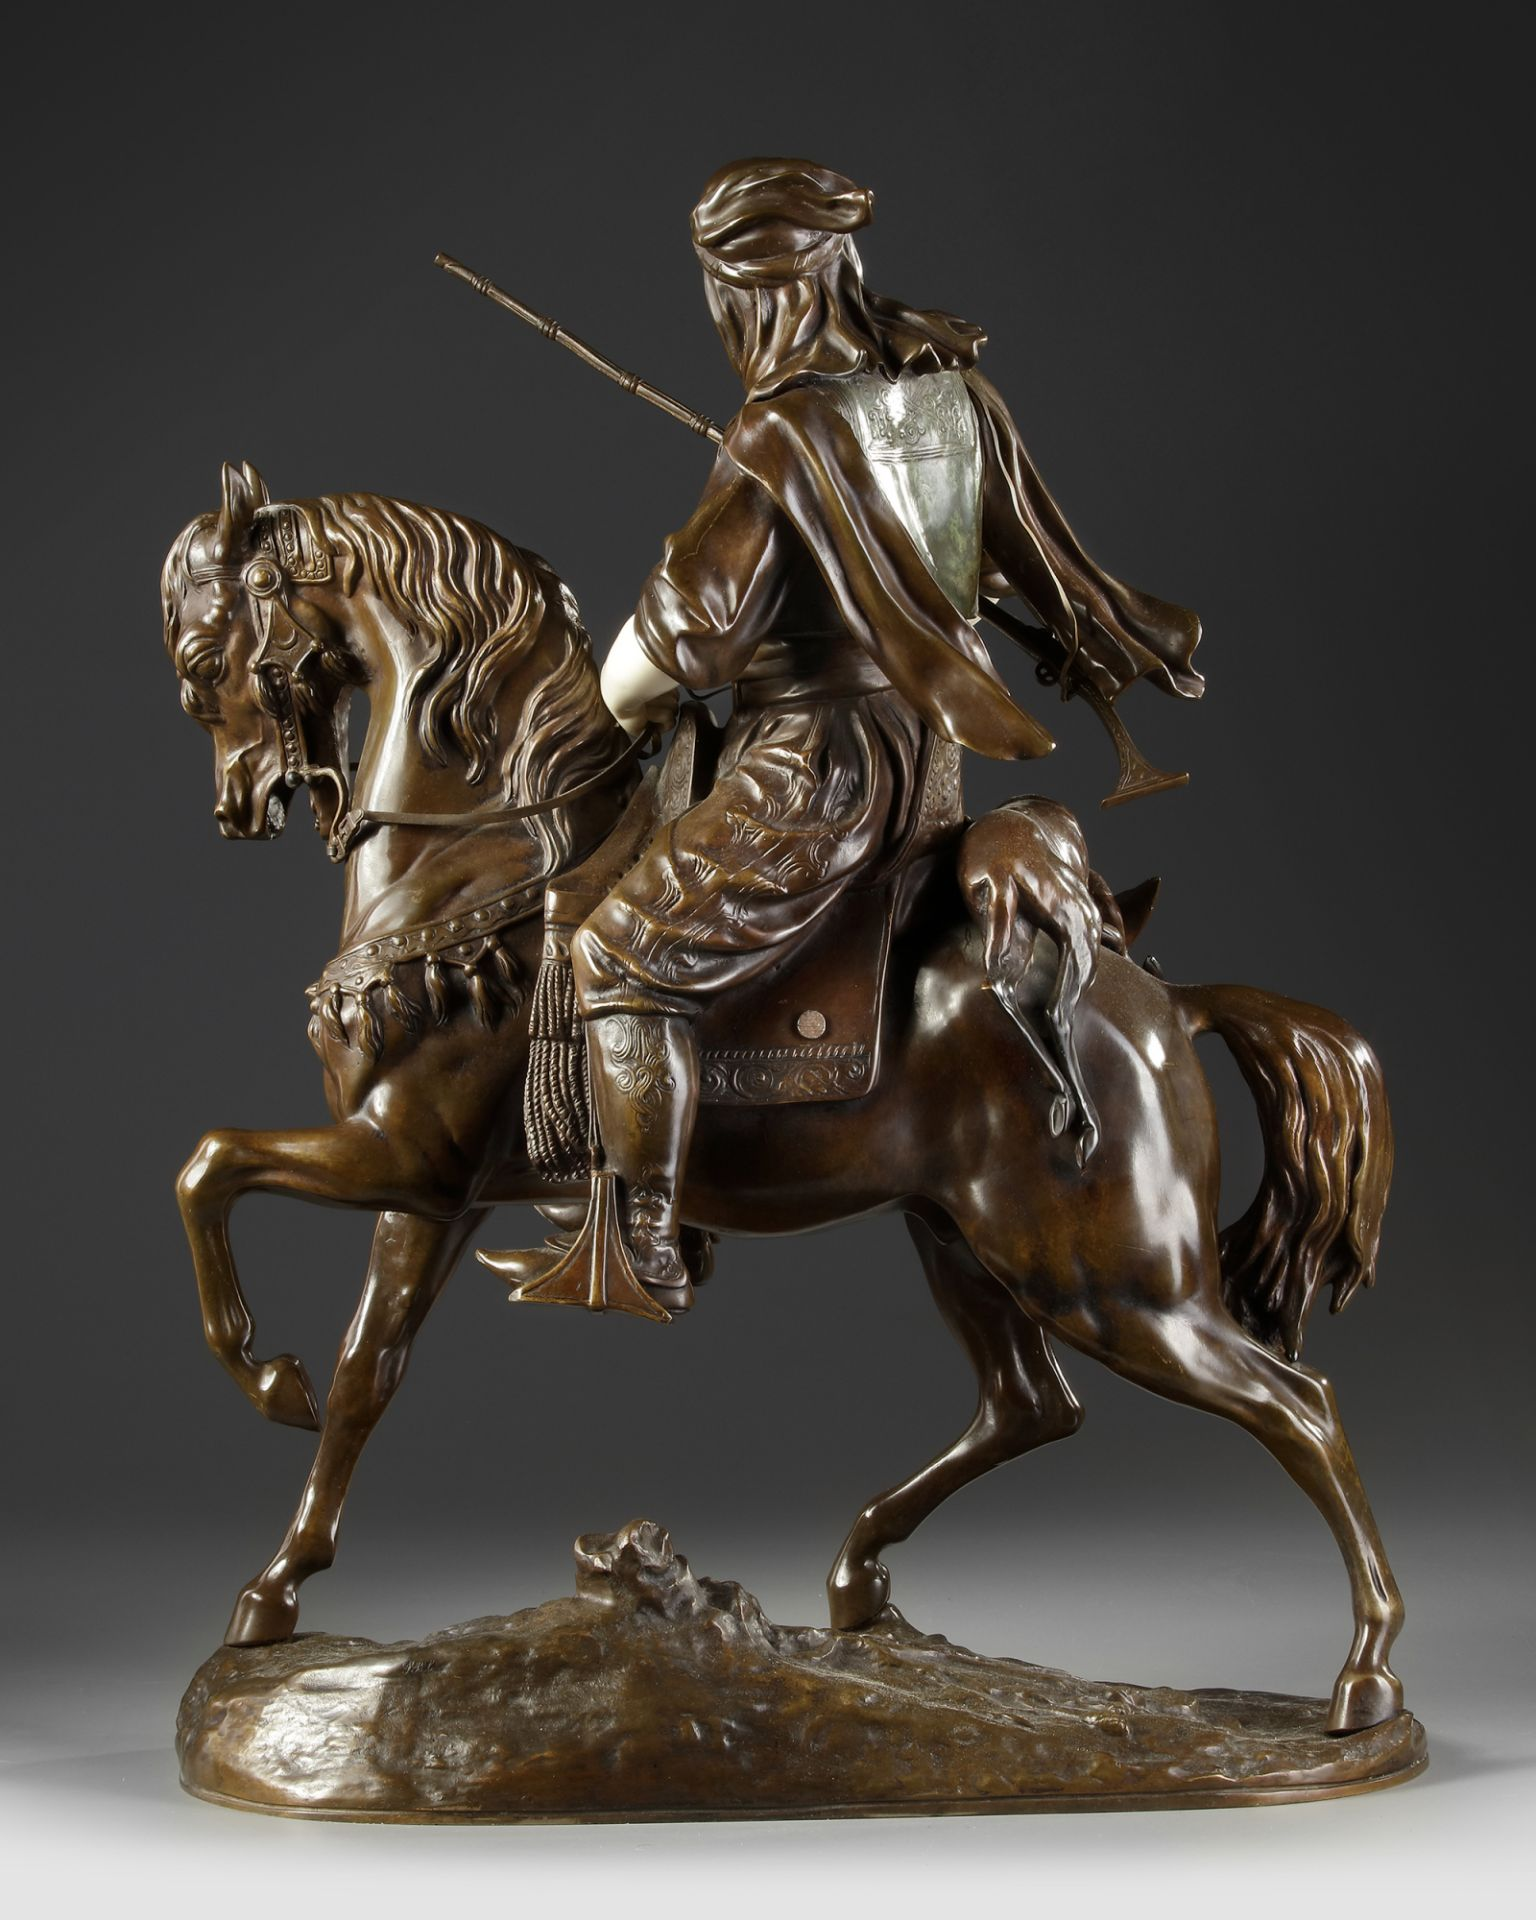 A SUPERB BRONZE SCULPTURE BY ALFRED BARYE AND EMILE GUILLEMIN, 19TH CENTURY - Image 3 of 7